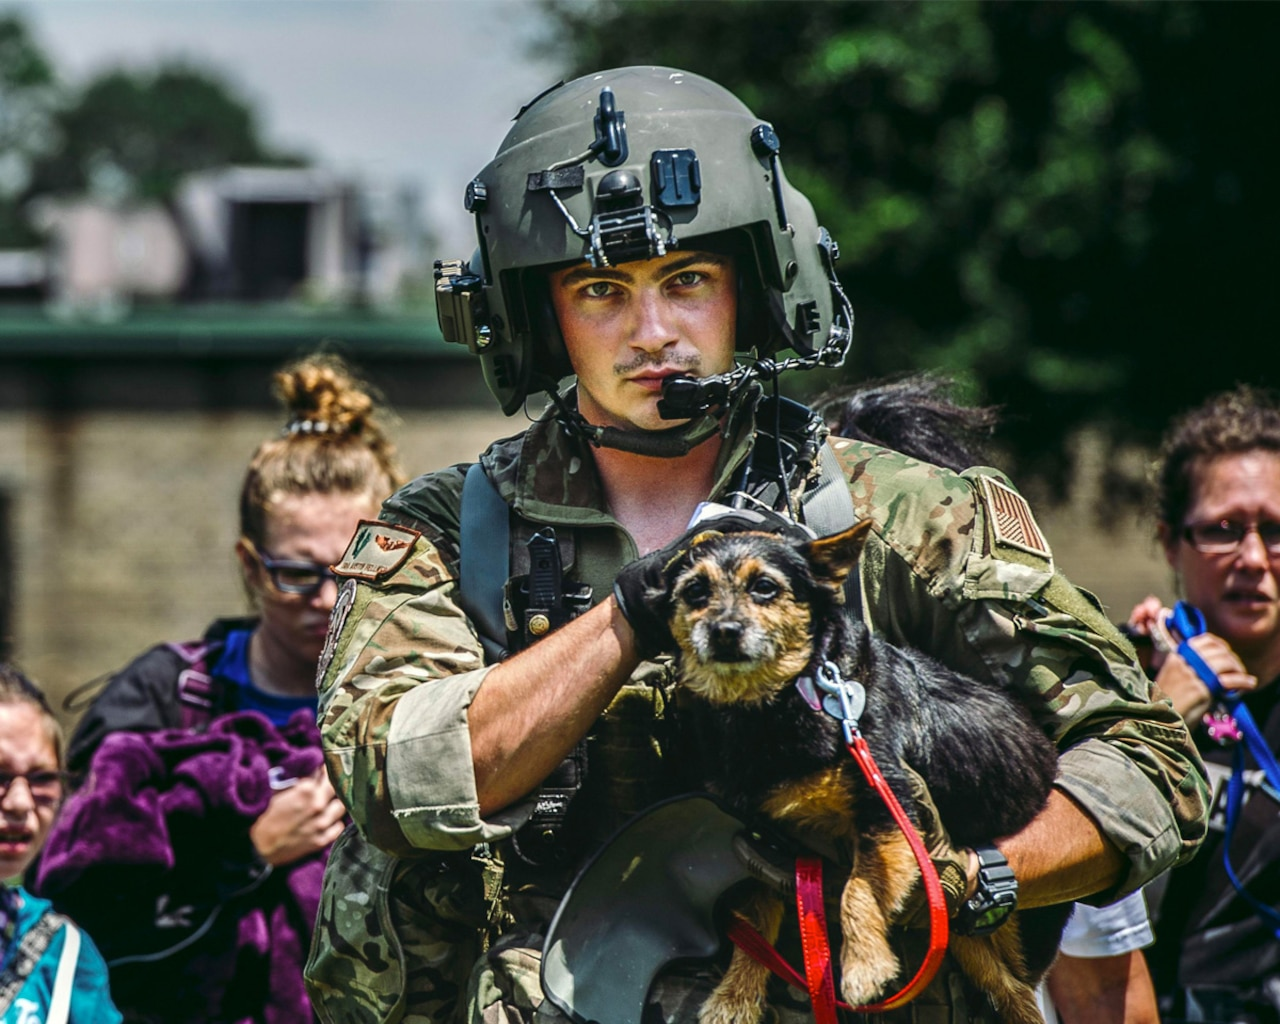 Service members train and prepare year-round so when disasters strike, troops are ready to help those in harm's way. Learn how you can prepare, too.